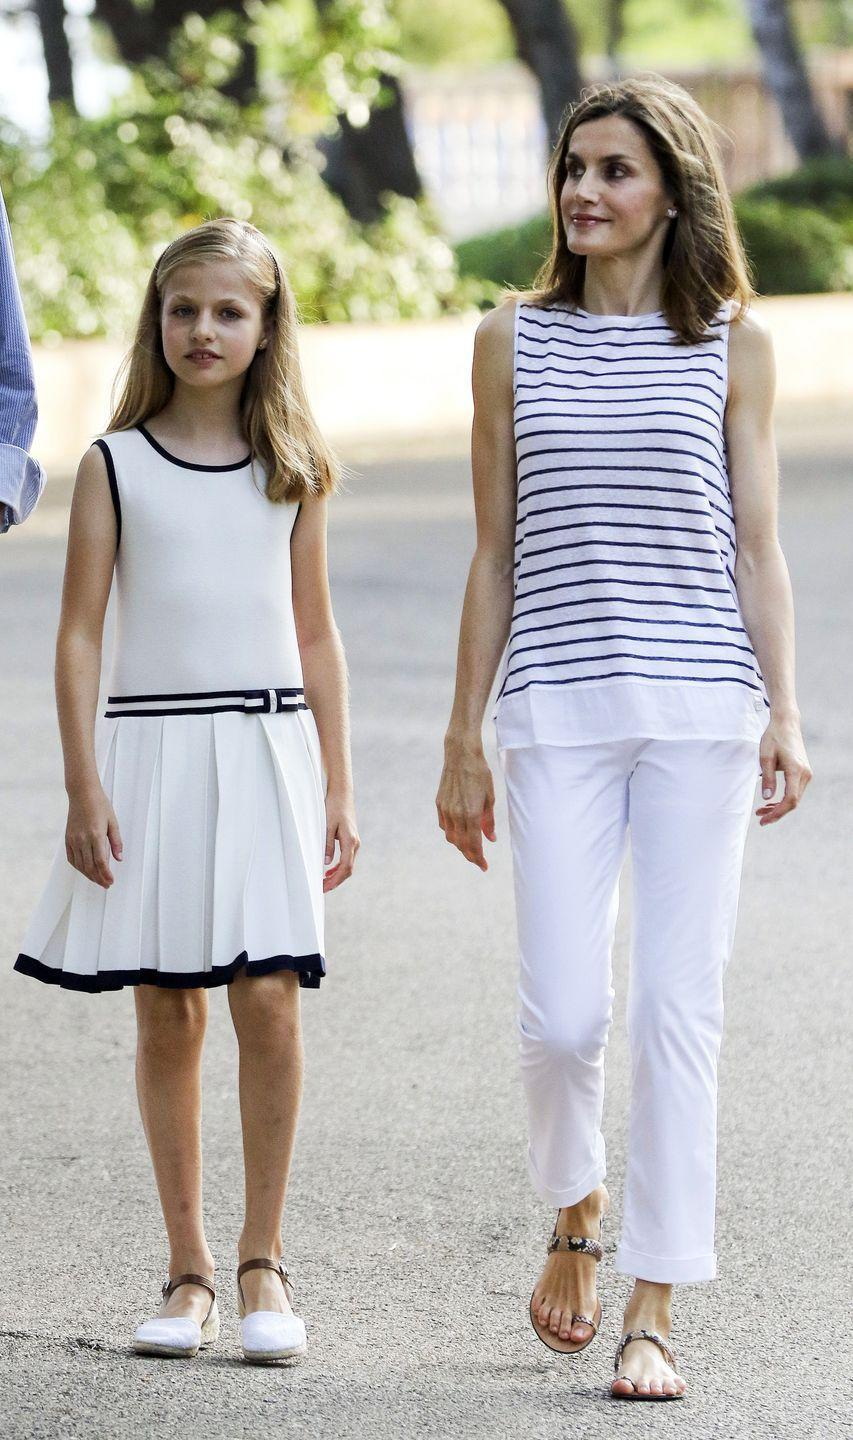 <p>Queen Letizia does European casual well, too–here she is in summery white pants and a striped white and navy top with her daughter, Princess Leonor. </p>